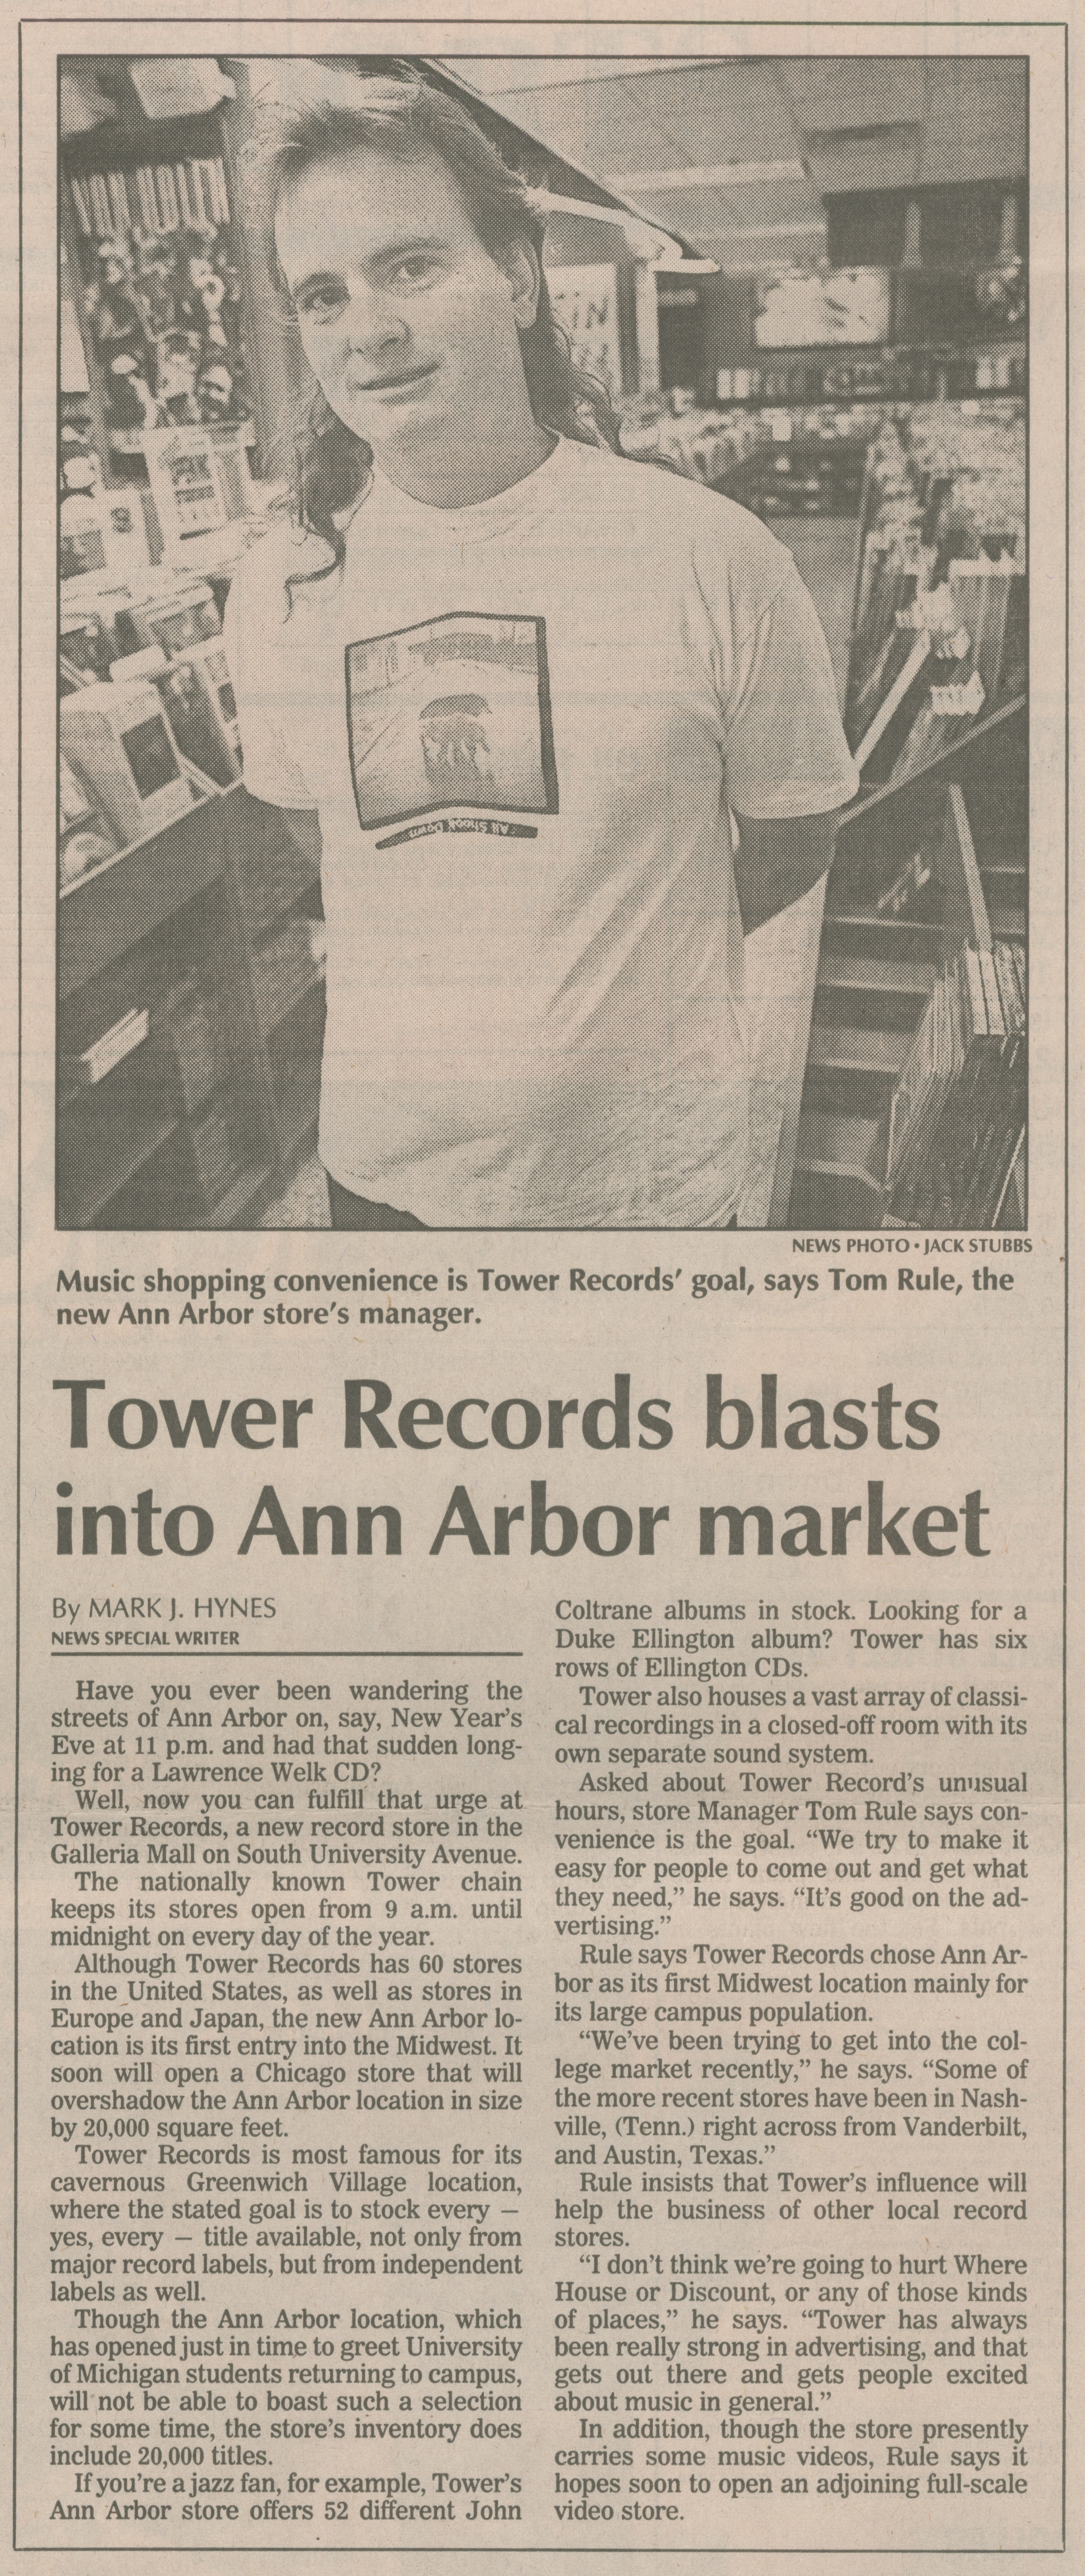 Tower Records blasts into Ann Arbor market image